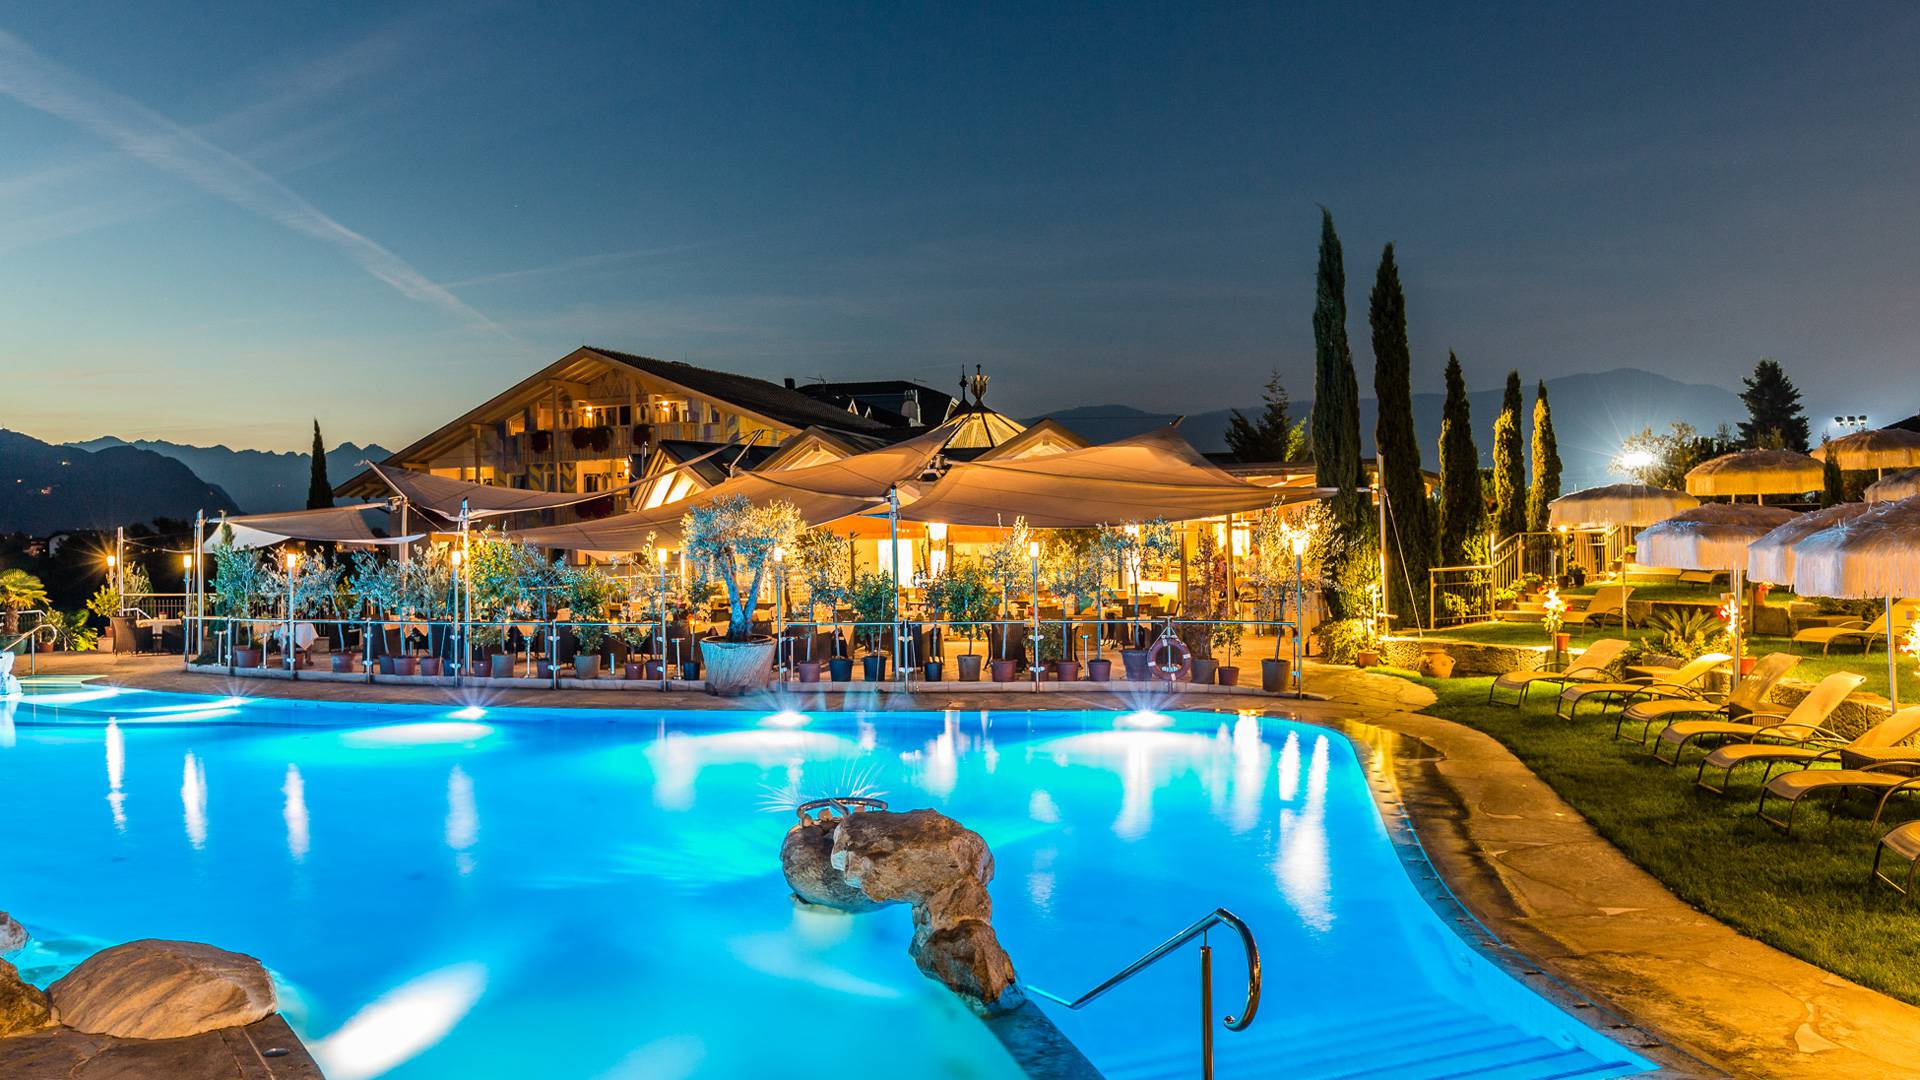 Welcome to your dream holiday at the 5 star hotel in appiano eppan